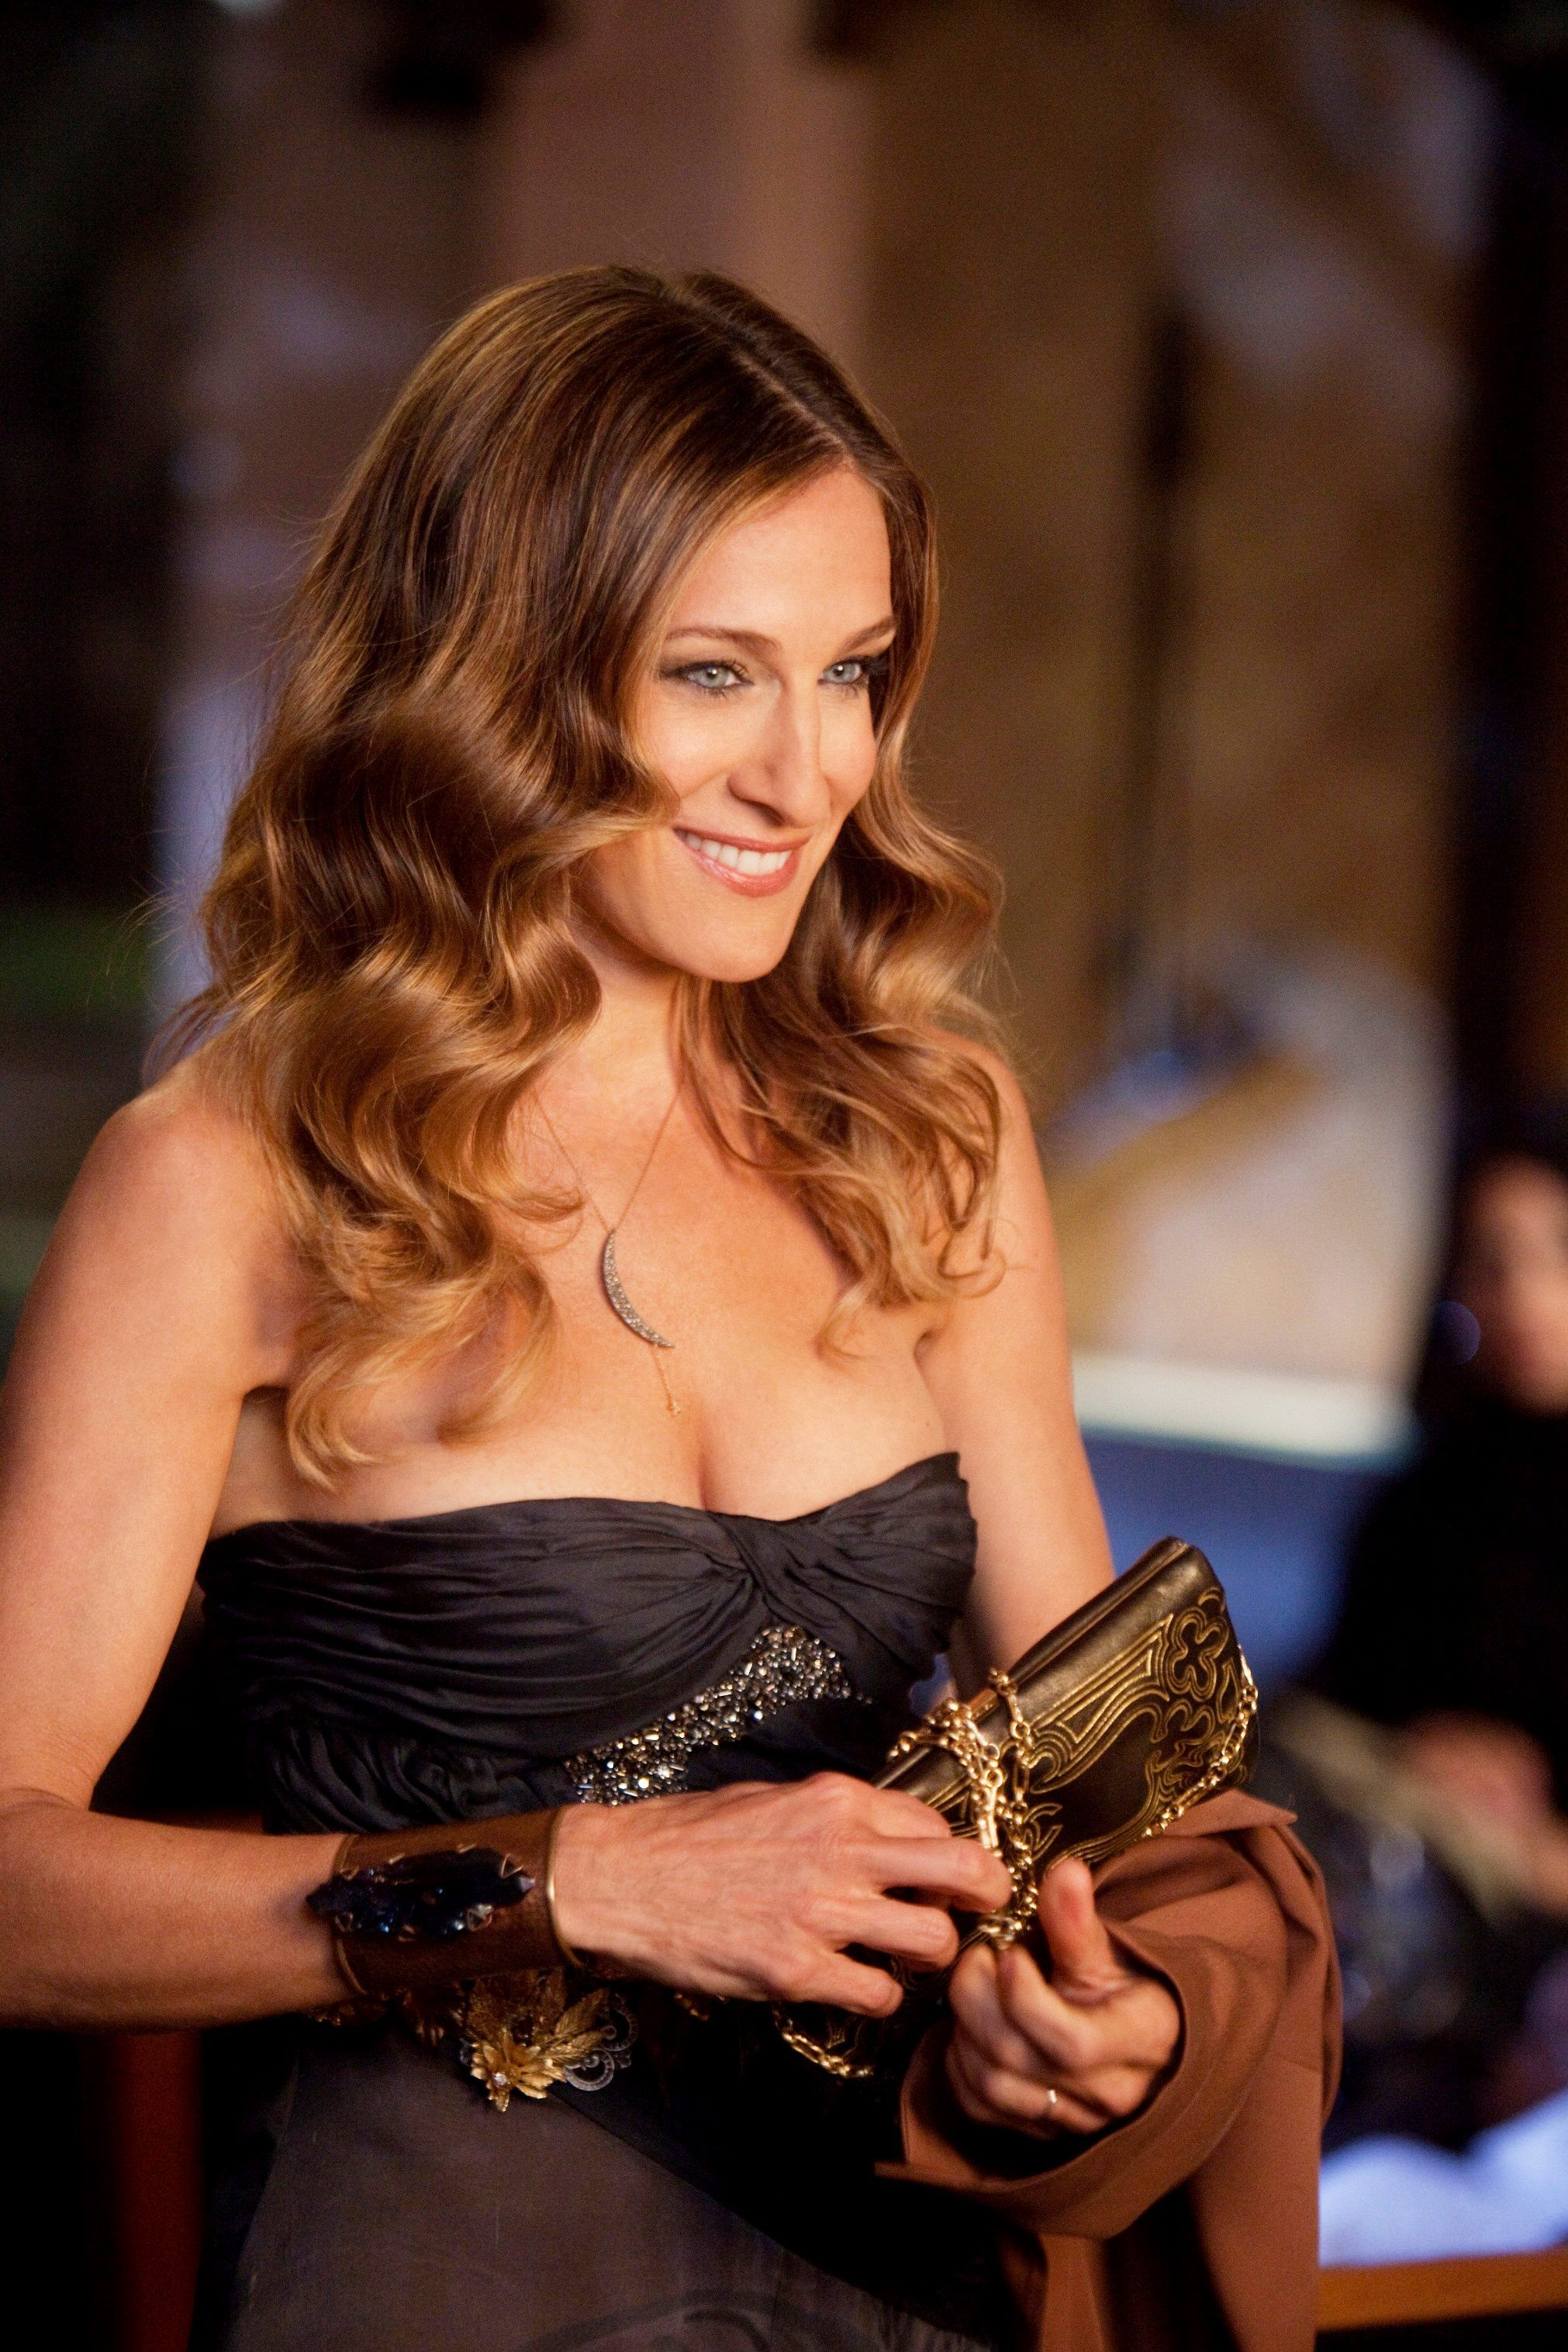 jessica-parker-nude-fakes